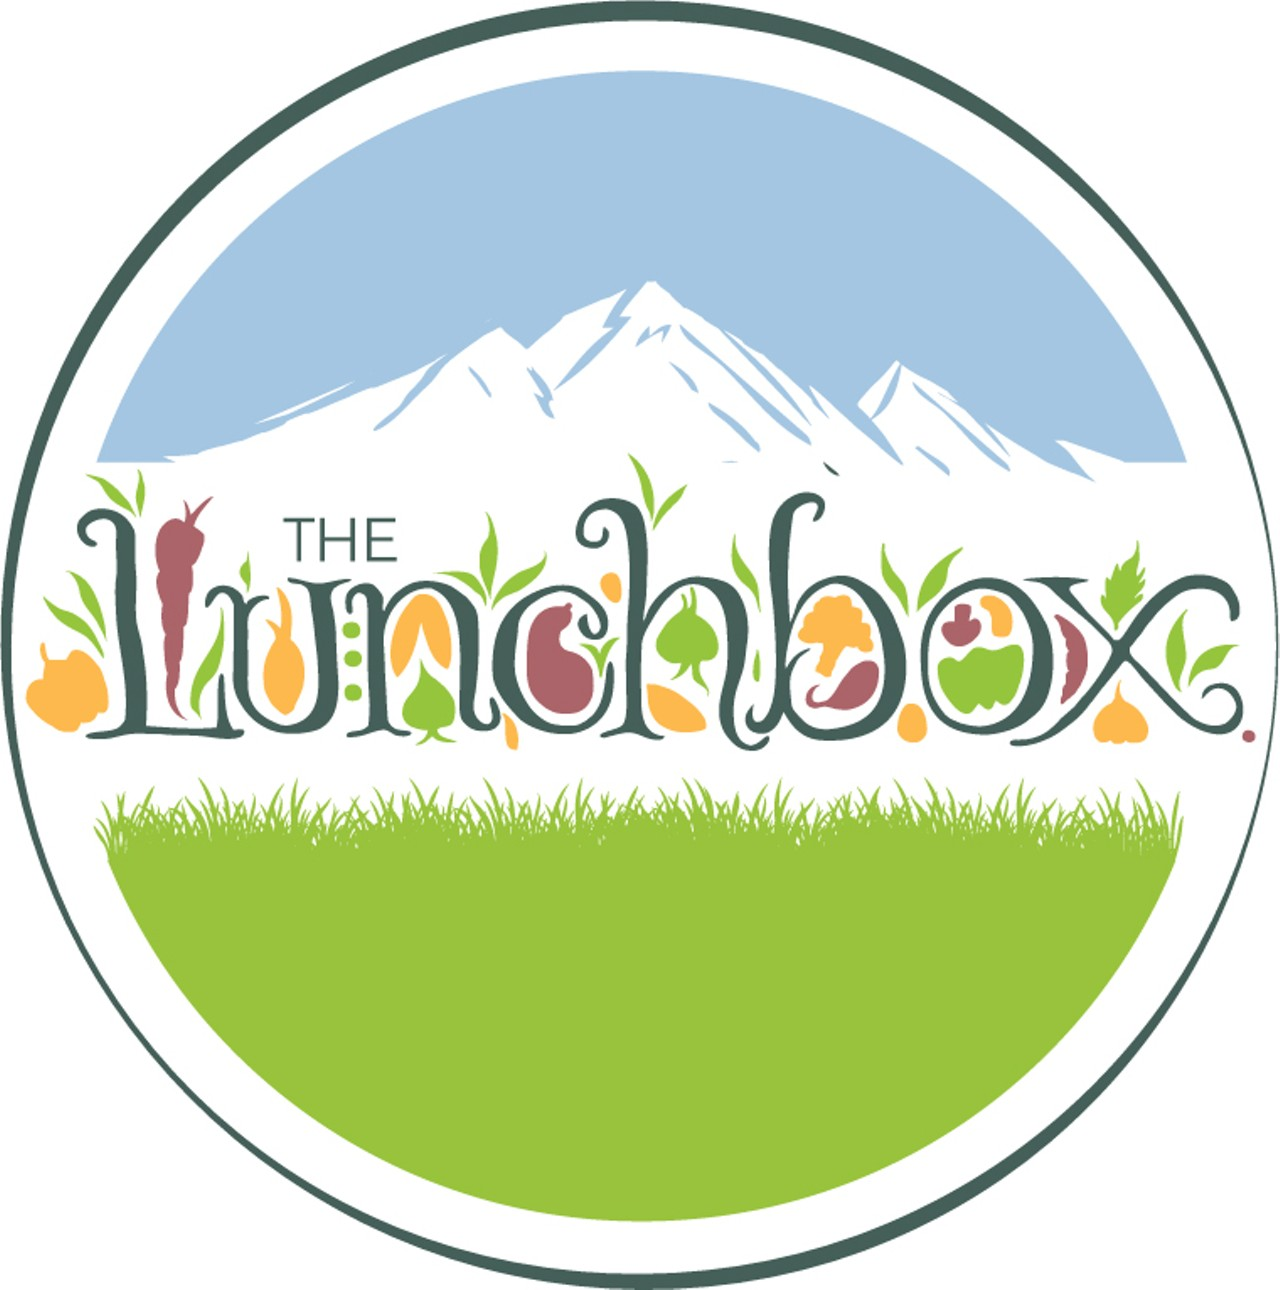 Lunchbox clipart summer. Download for free png